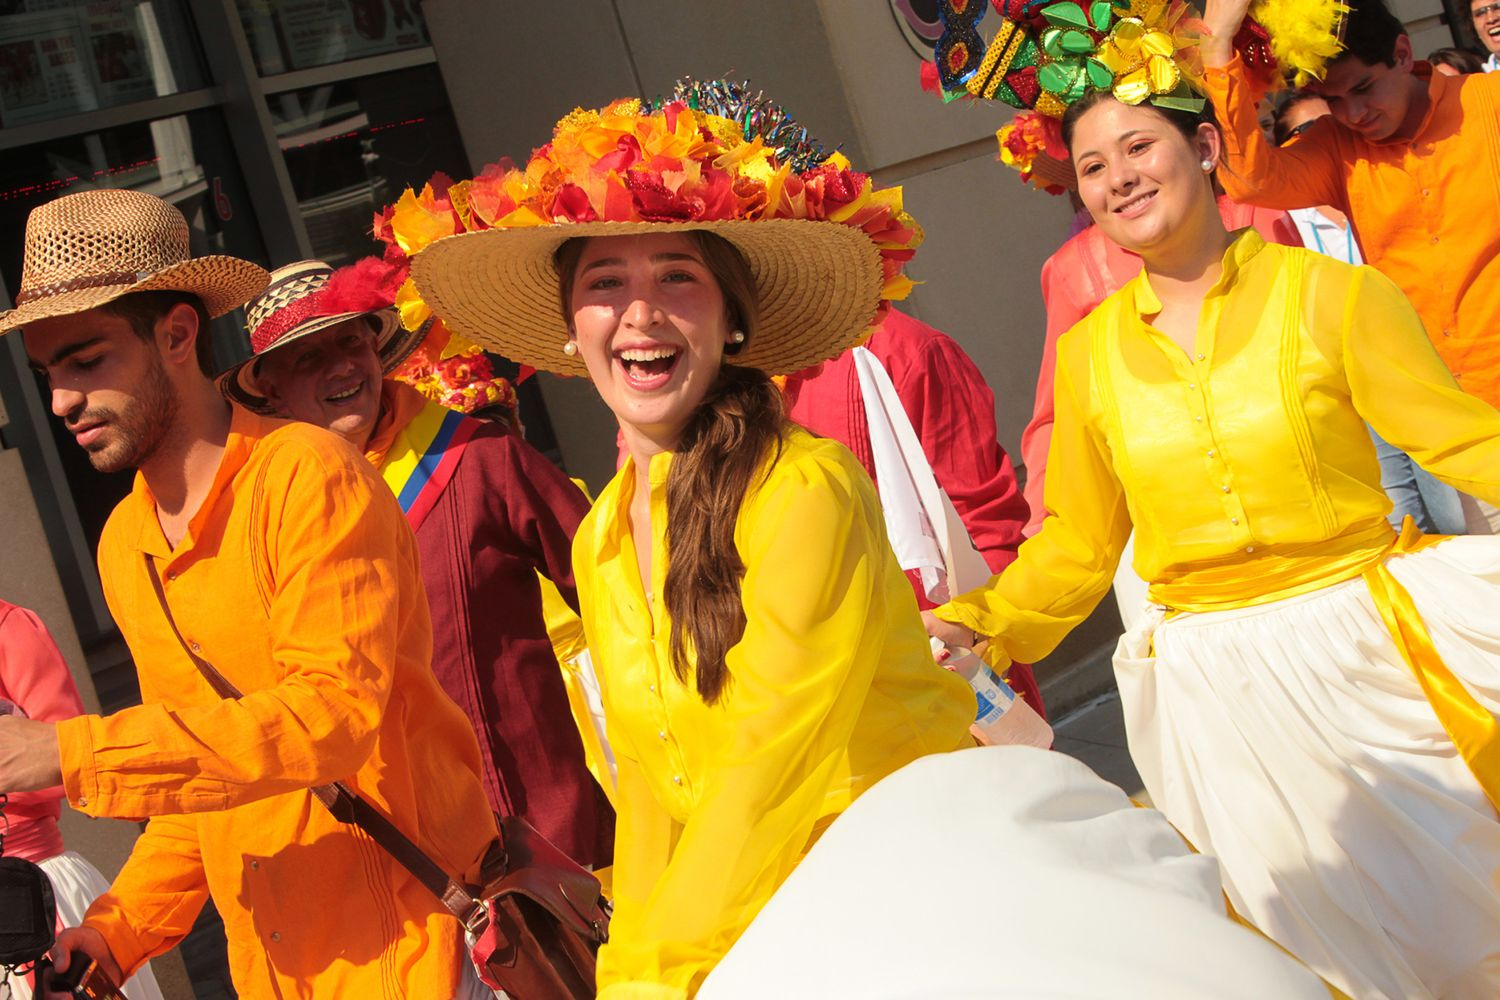 Happy singers at a parade